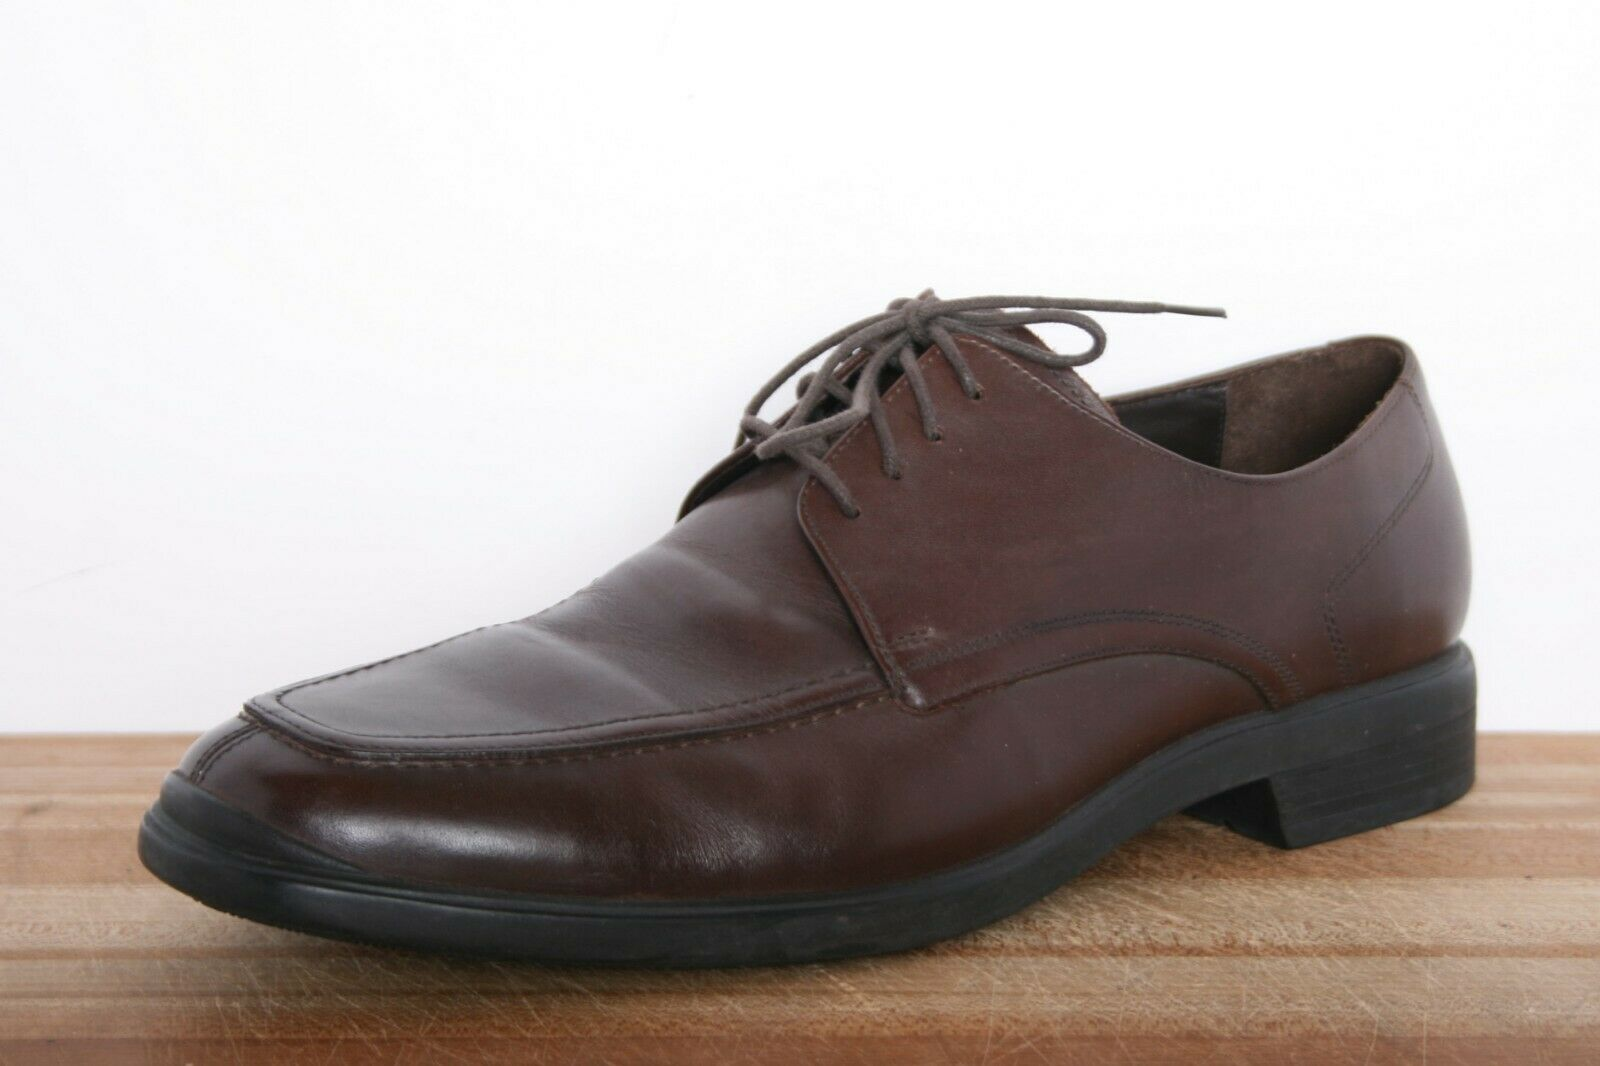 COLE HAAN 'Air Styler' Brown Leather Split Apron Toe Oxfords Sz. 11M